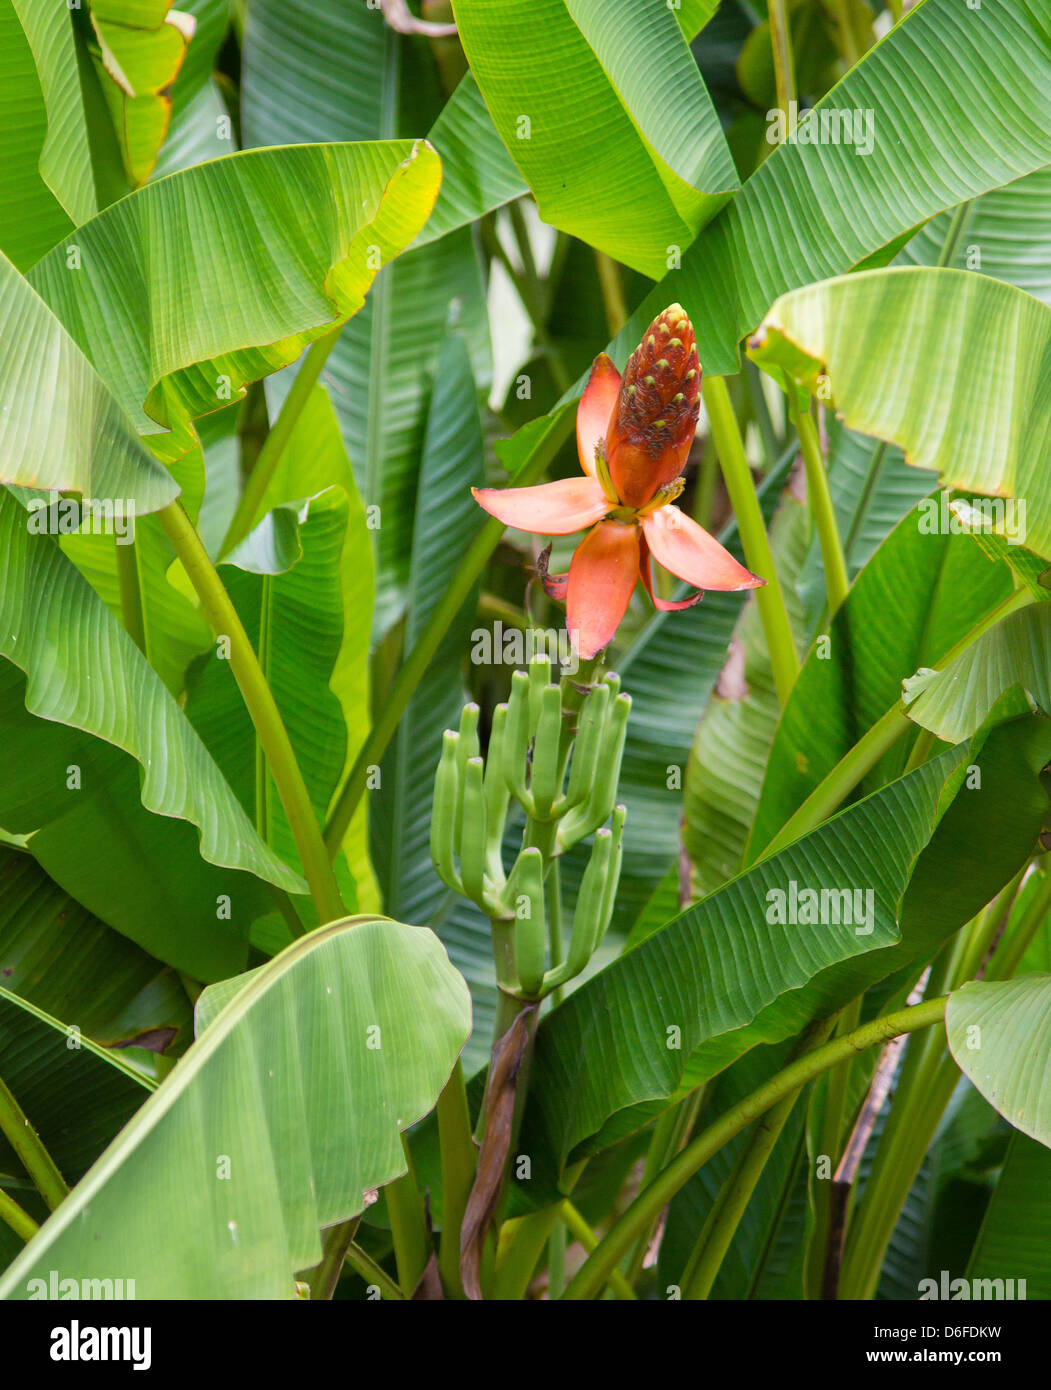 Banana plant Musa sp with orange flowers growing as an ornamental plant in a garden in Sabah Borneo - Stock Image